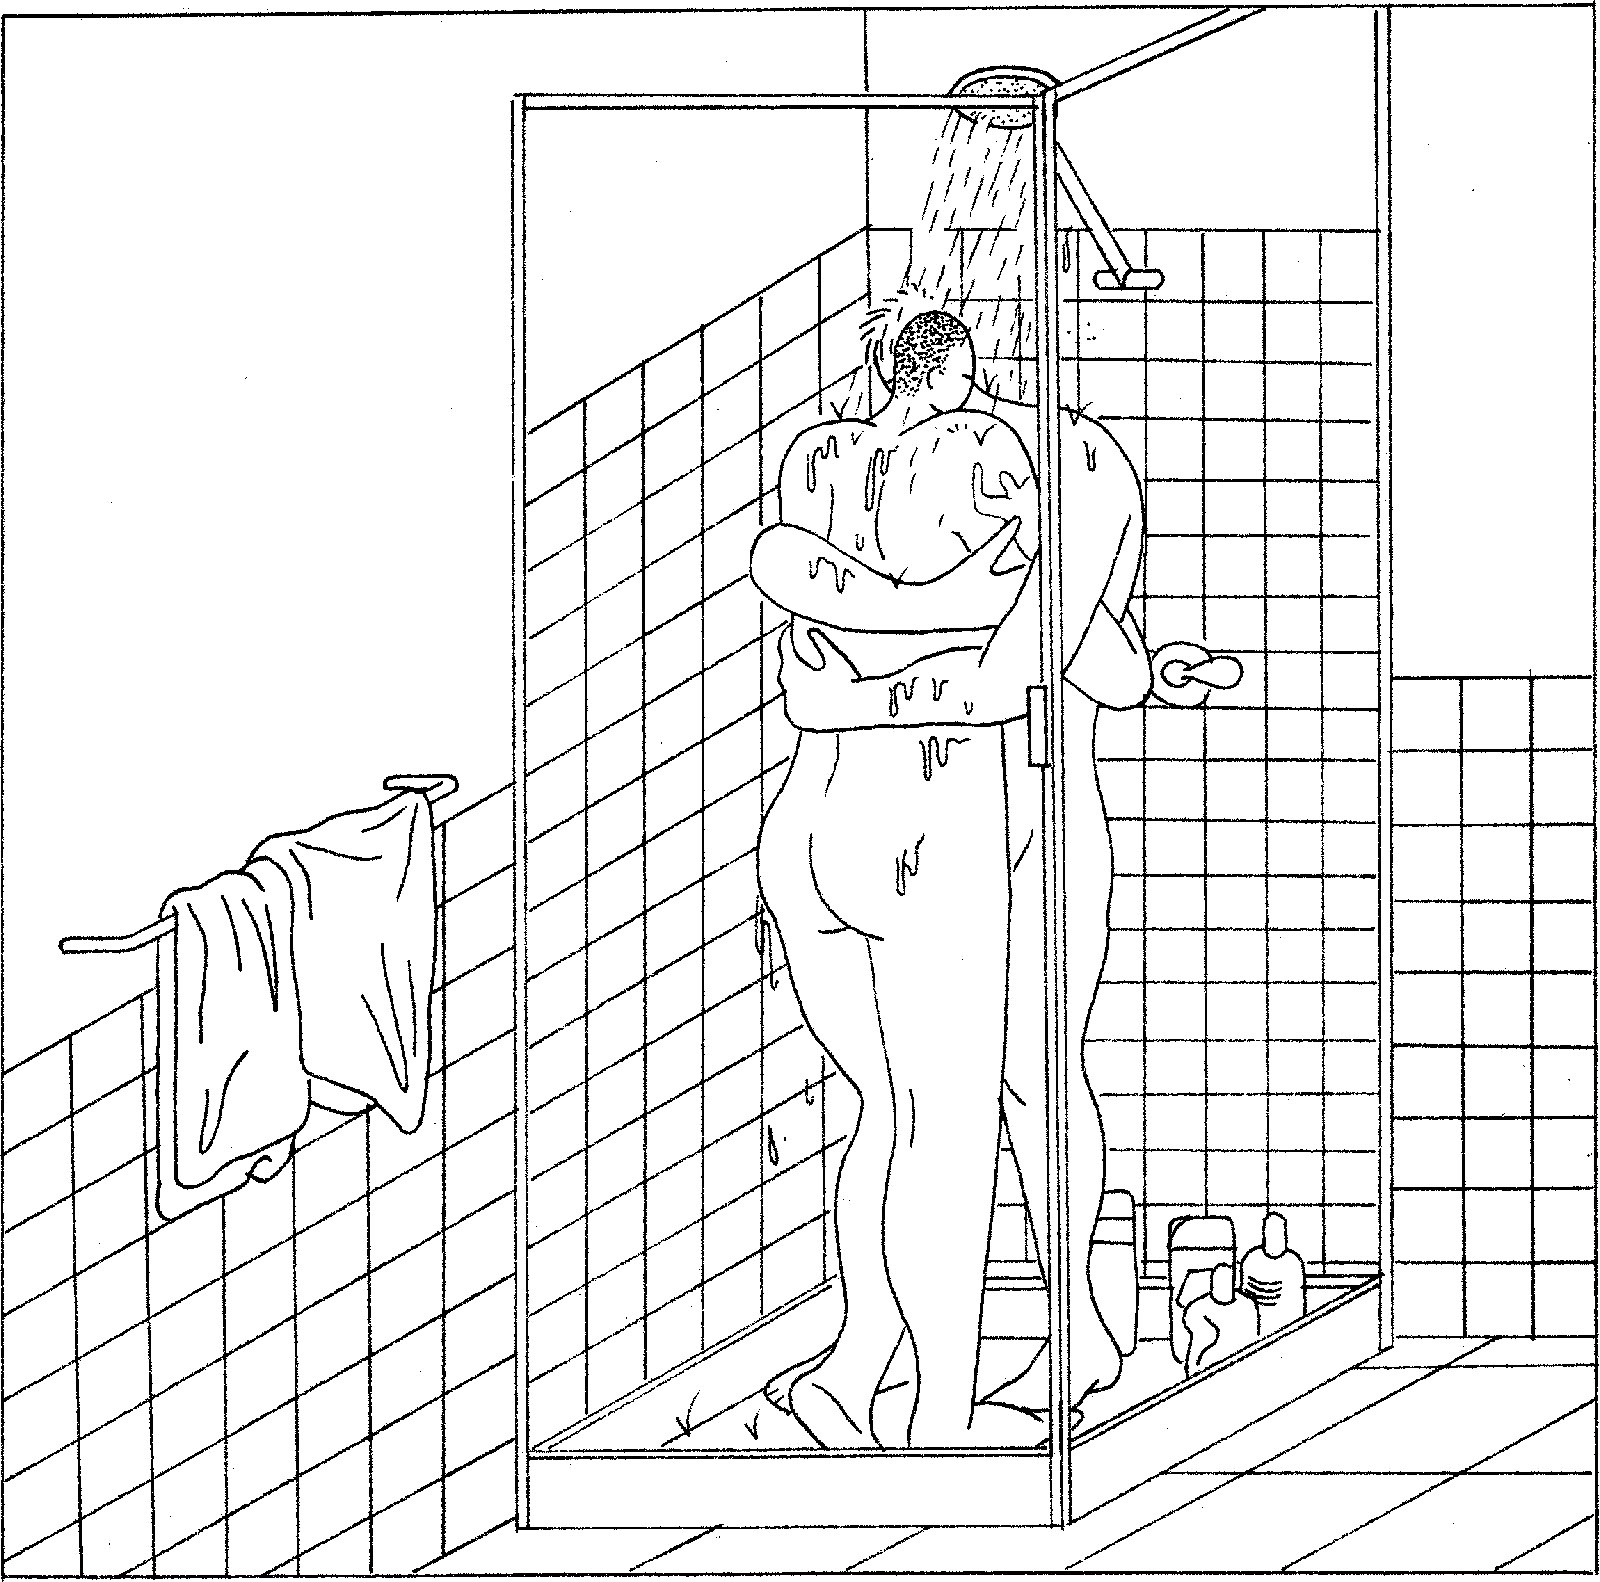 Drawing of a couple in a shower